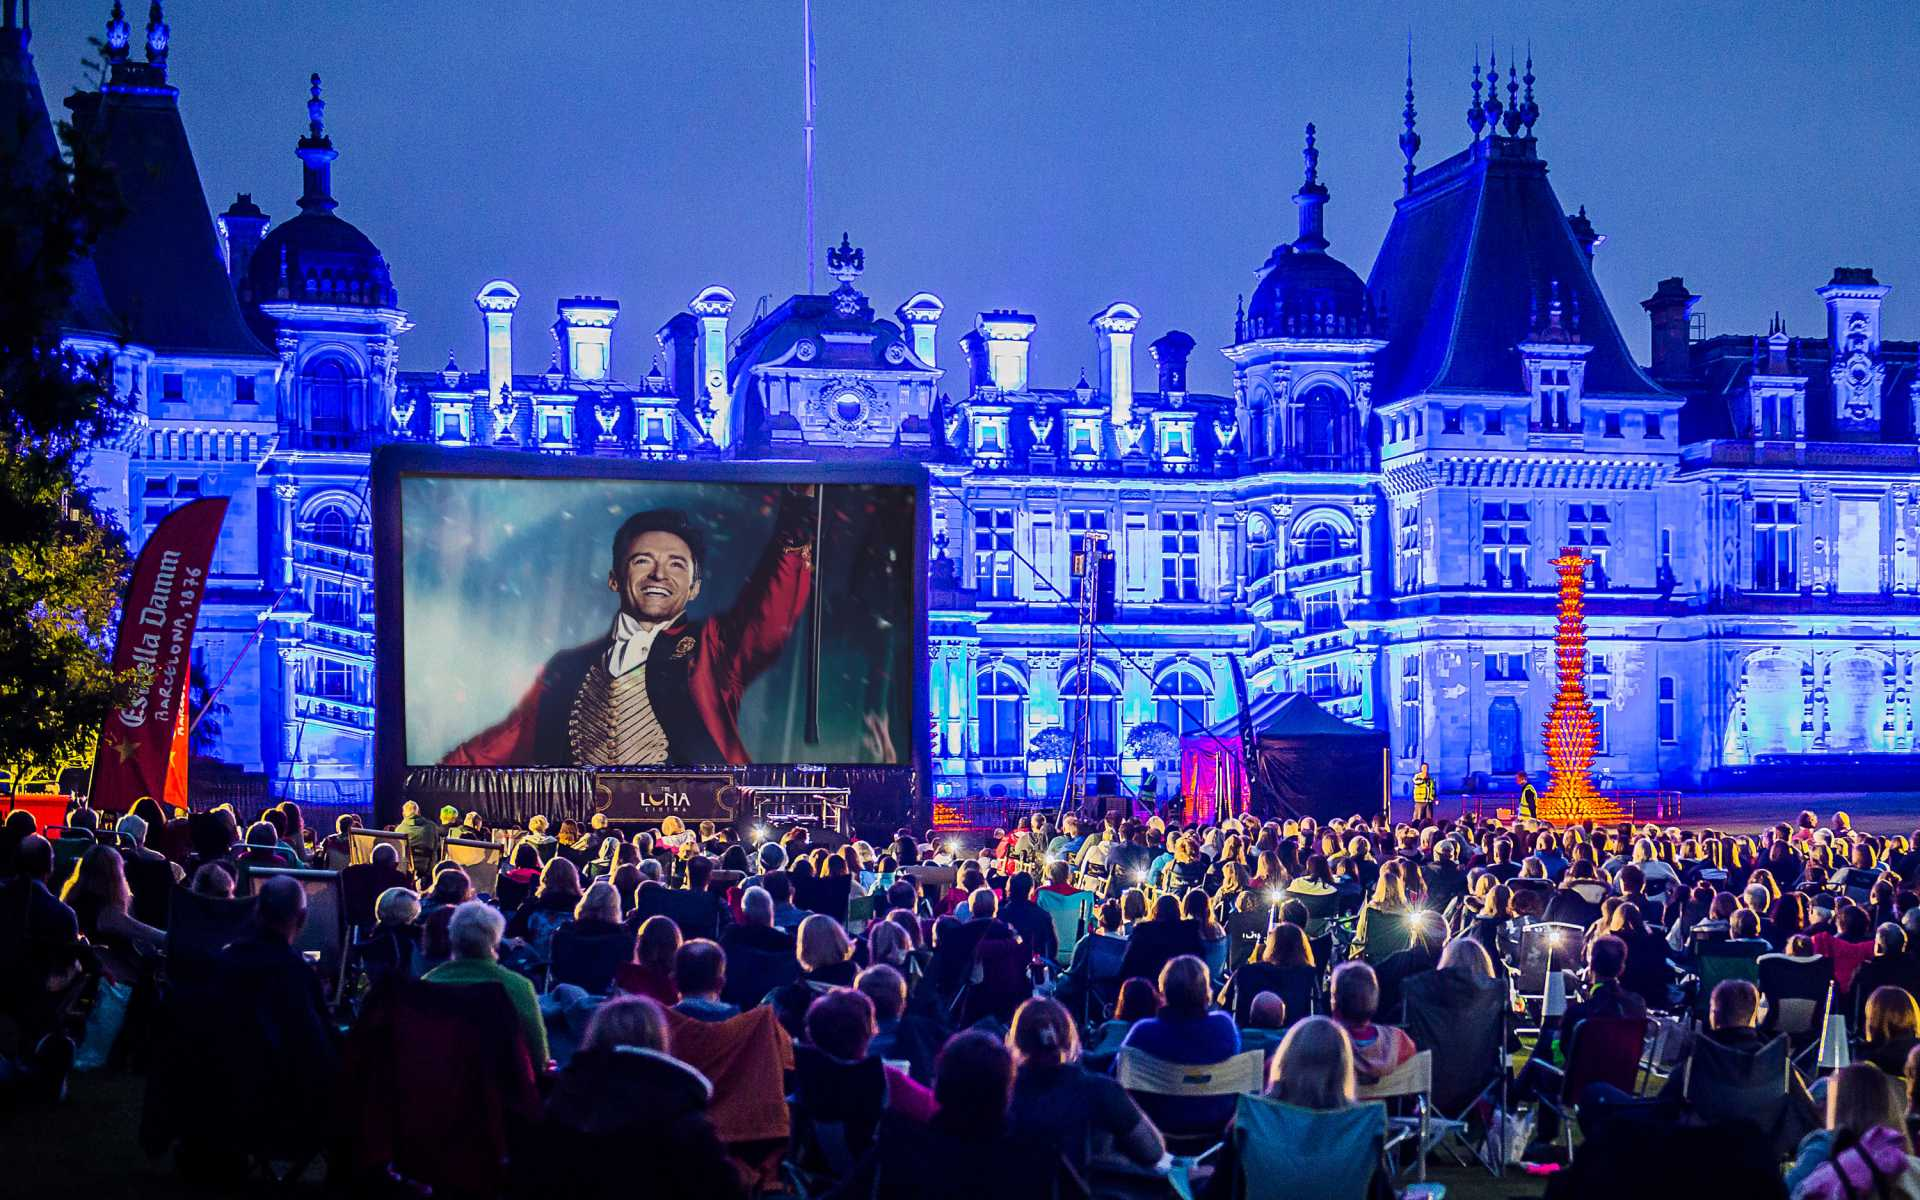 Inside The Screen The Perfect Spot For Your Outdoor Cinema Nights 4